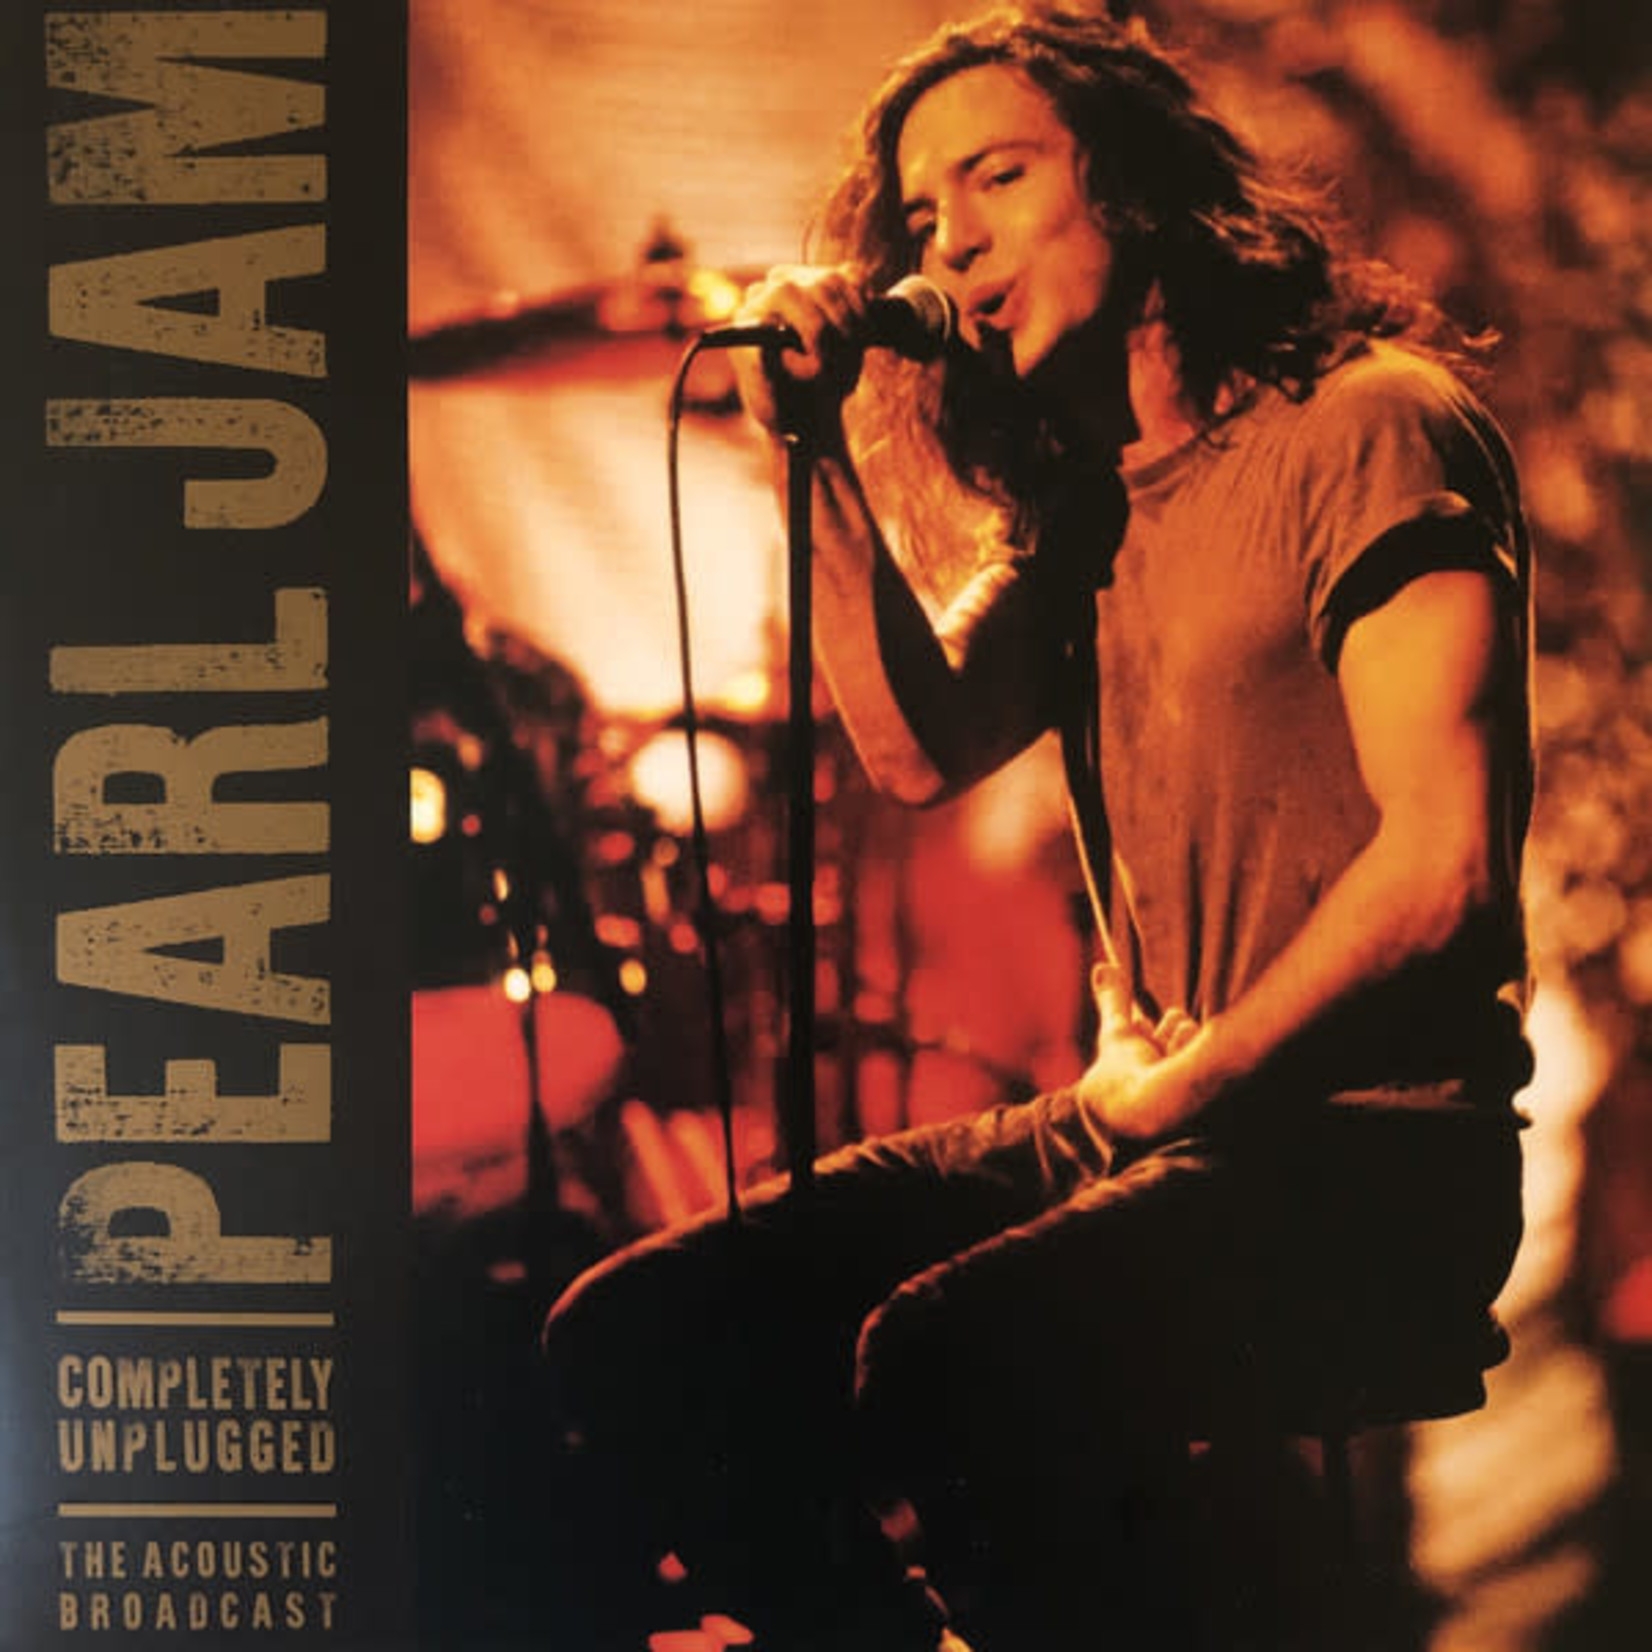 Vinyl Pearl Jam - Completely Unplugged (The Acoustic Broadcast)